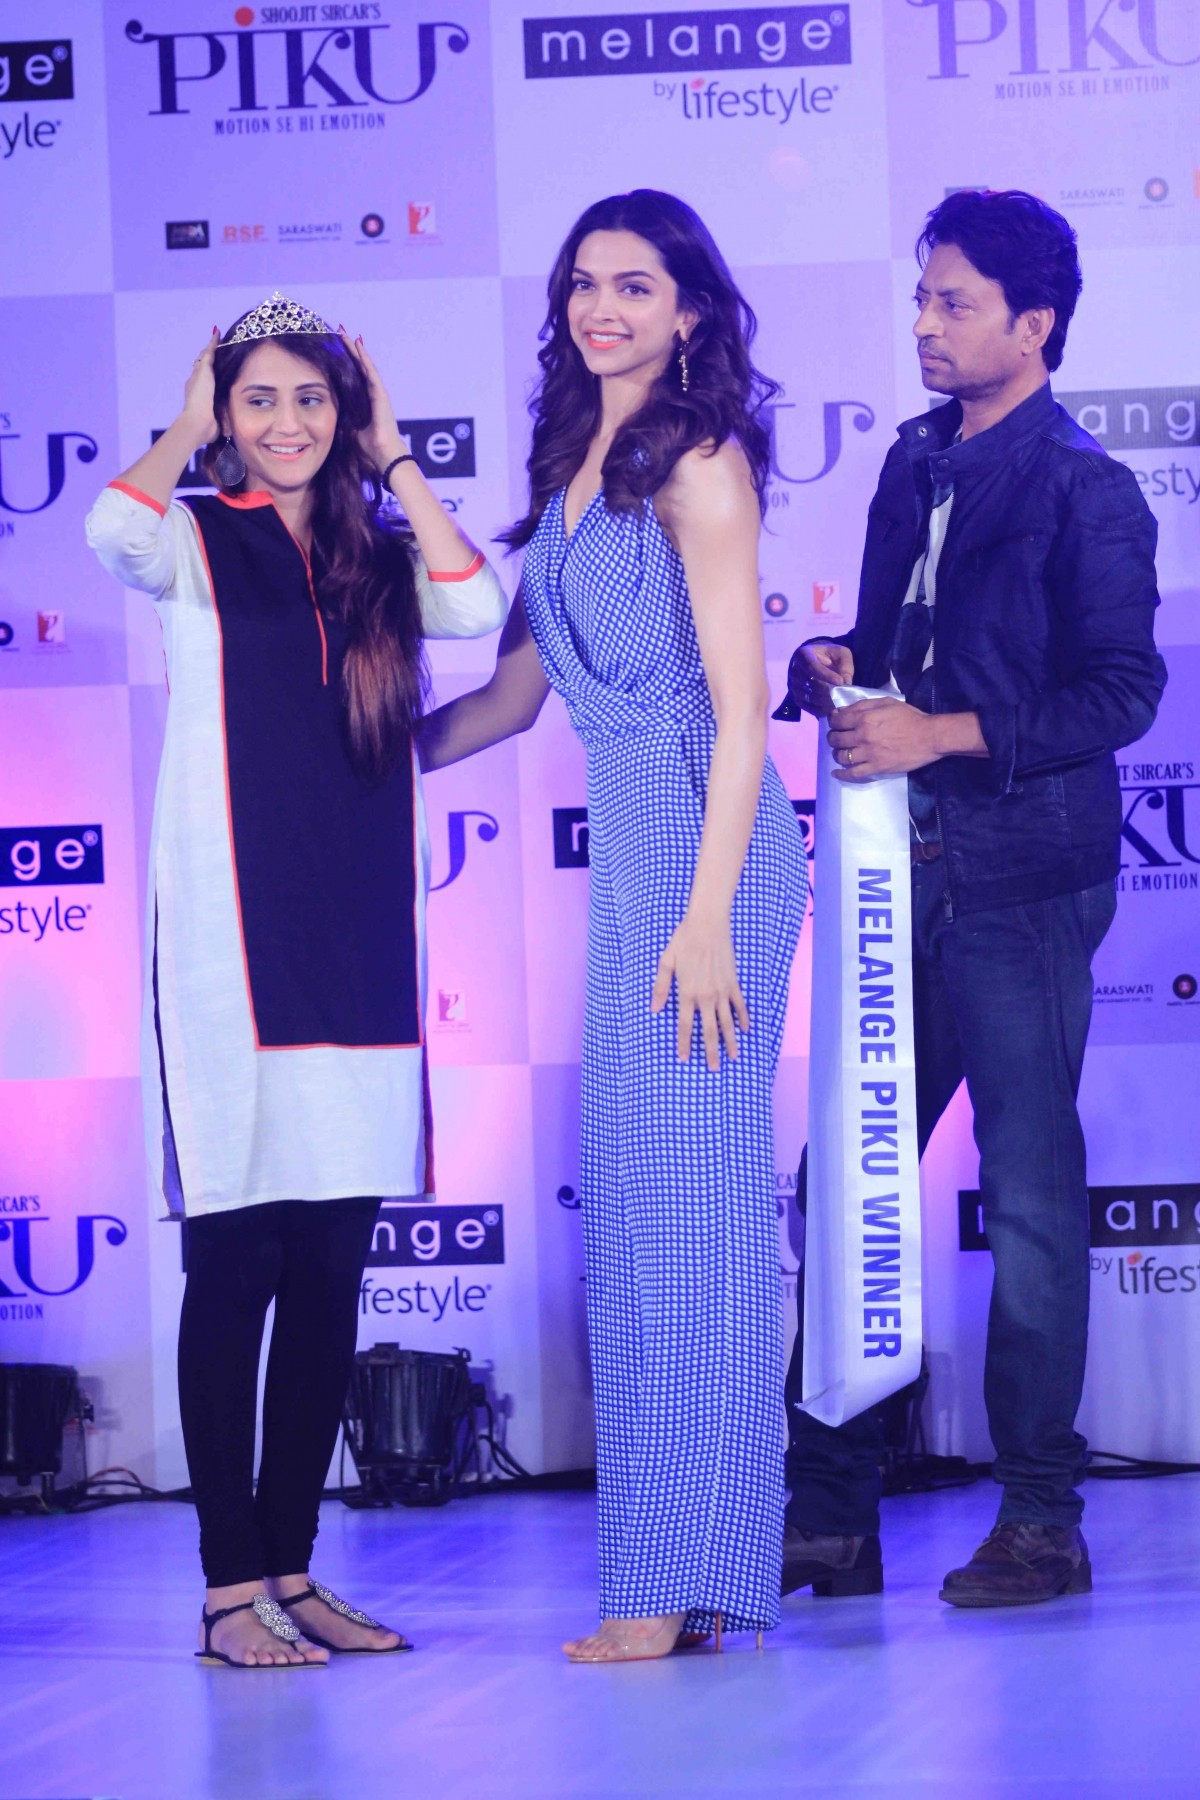 'Piku' Promotion: Deepika Padukone, Irrfan Khan Unveil 'Piku Melange Collection'